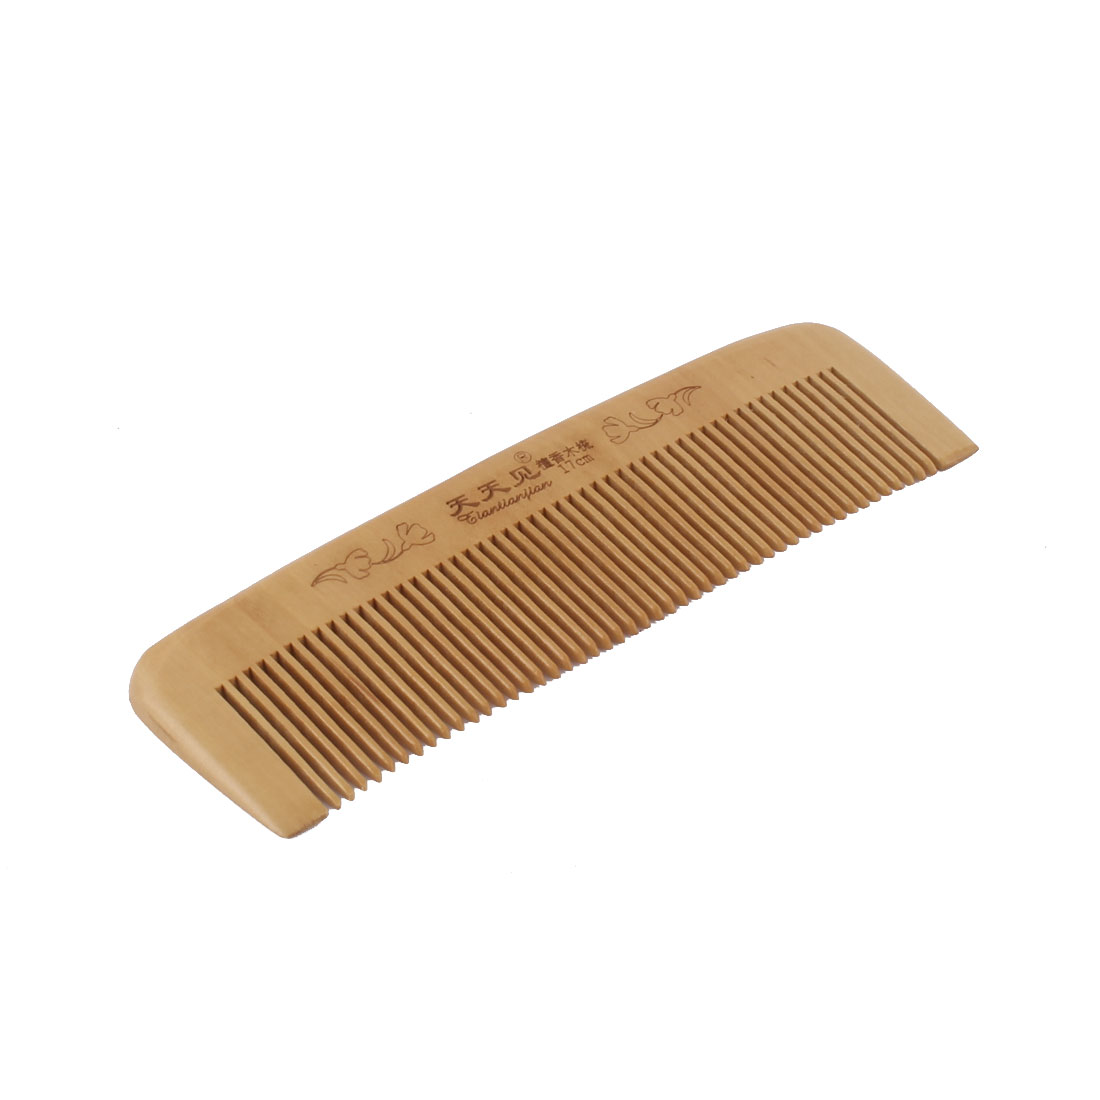 Wooden Chinese Style Portable Anti Static Hair Care Head Massage Comb 17cm x 5cm